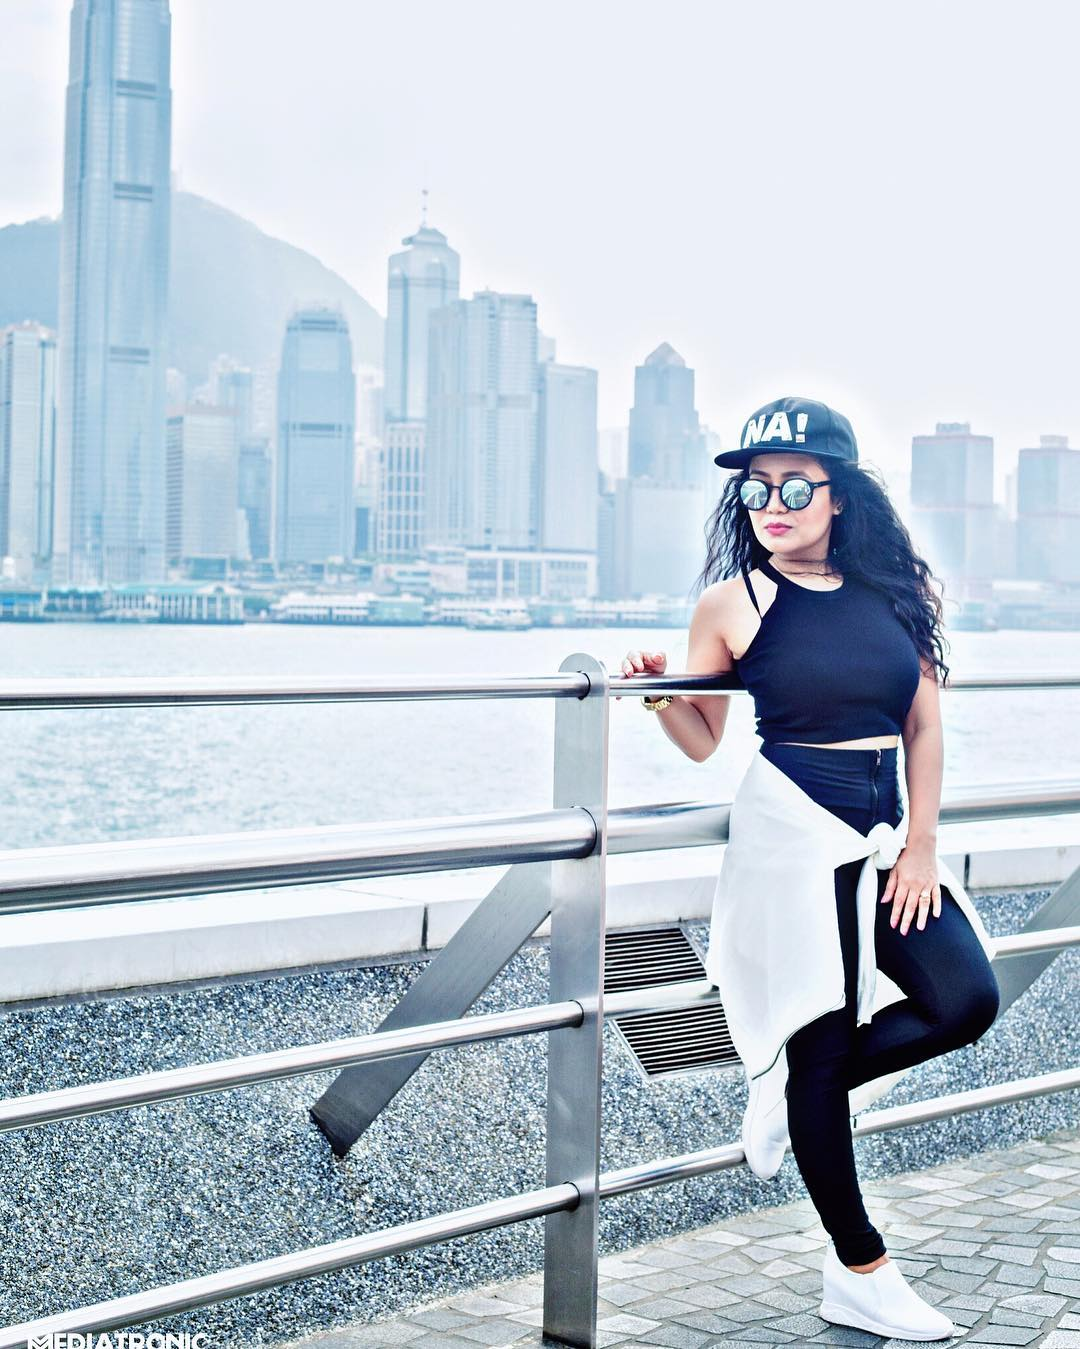 Wallpapers Images Picpile Beautiful Neha Kakkar Hd Wallpapers